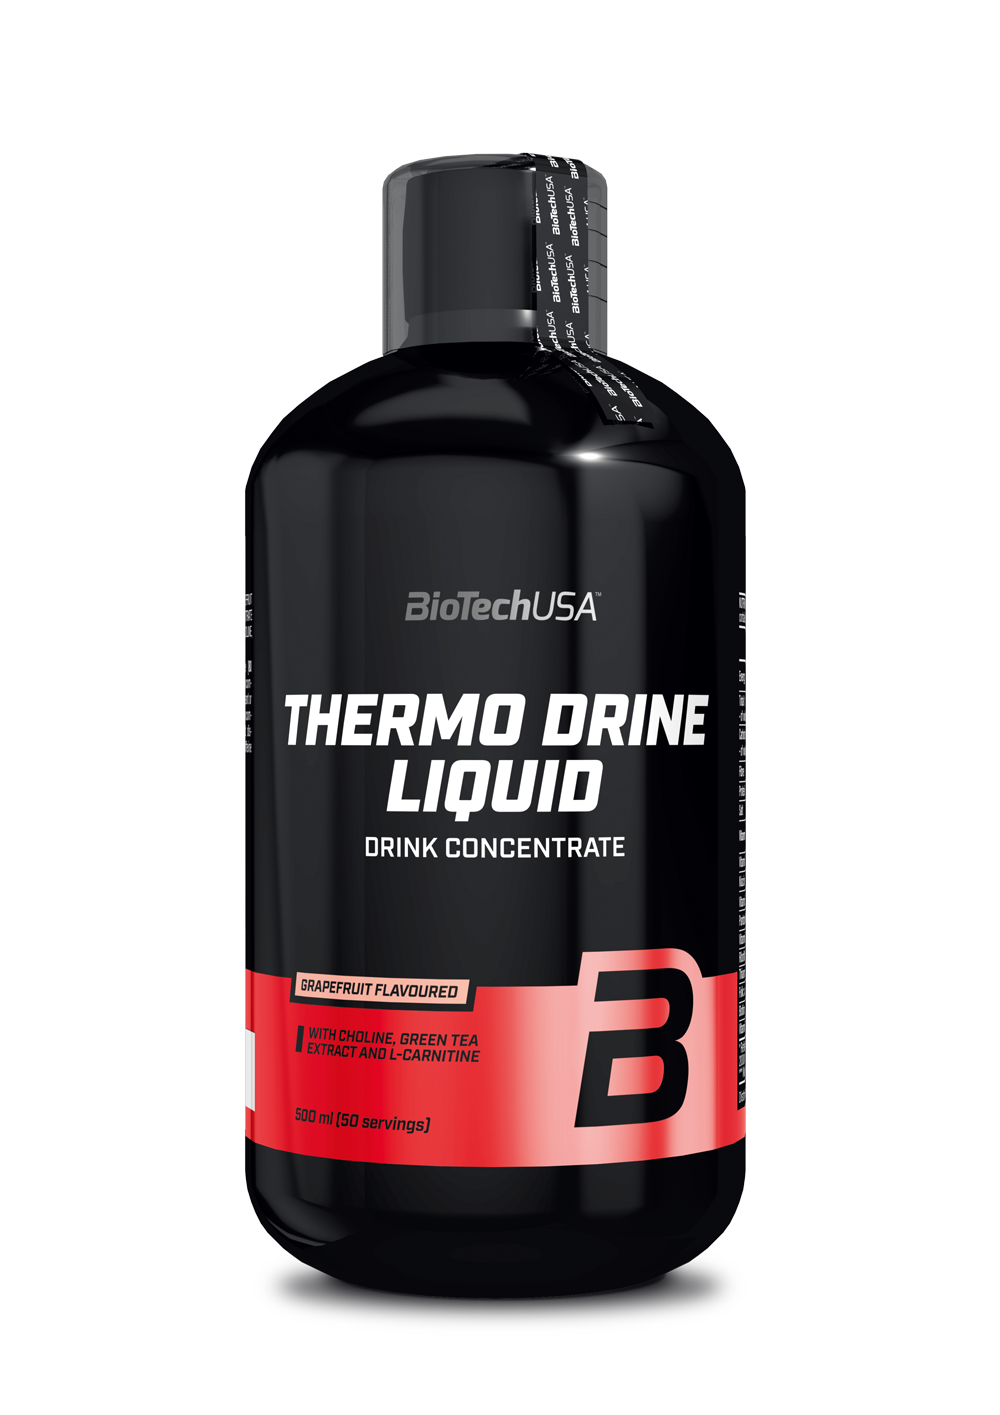 BioTech USA Thermo Drine Liquid 500 ml